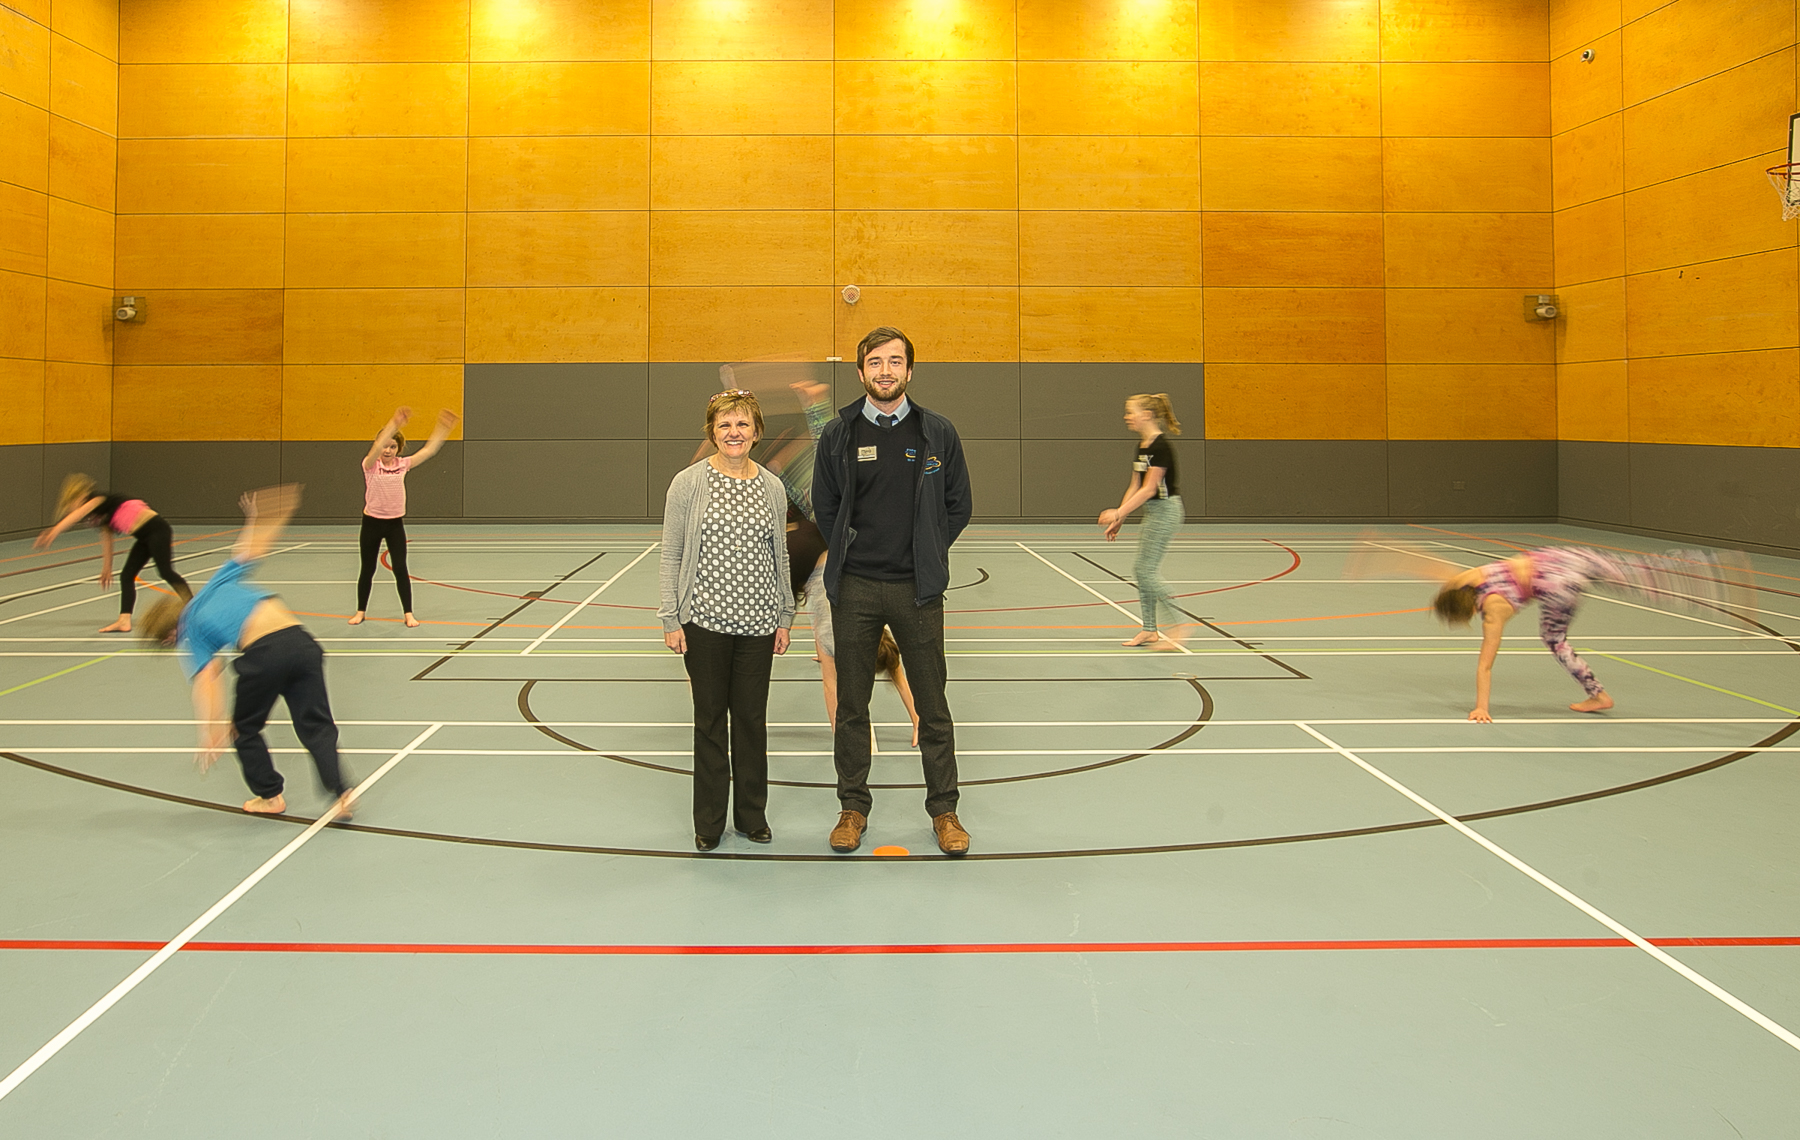 Local gymnasts try out the new sports hall flooring watched on by Cllr Judy Hamilton with Scott Bramall, duty manager, Fire Sports and Leisure Trust.